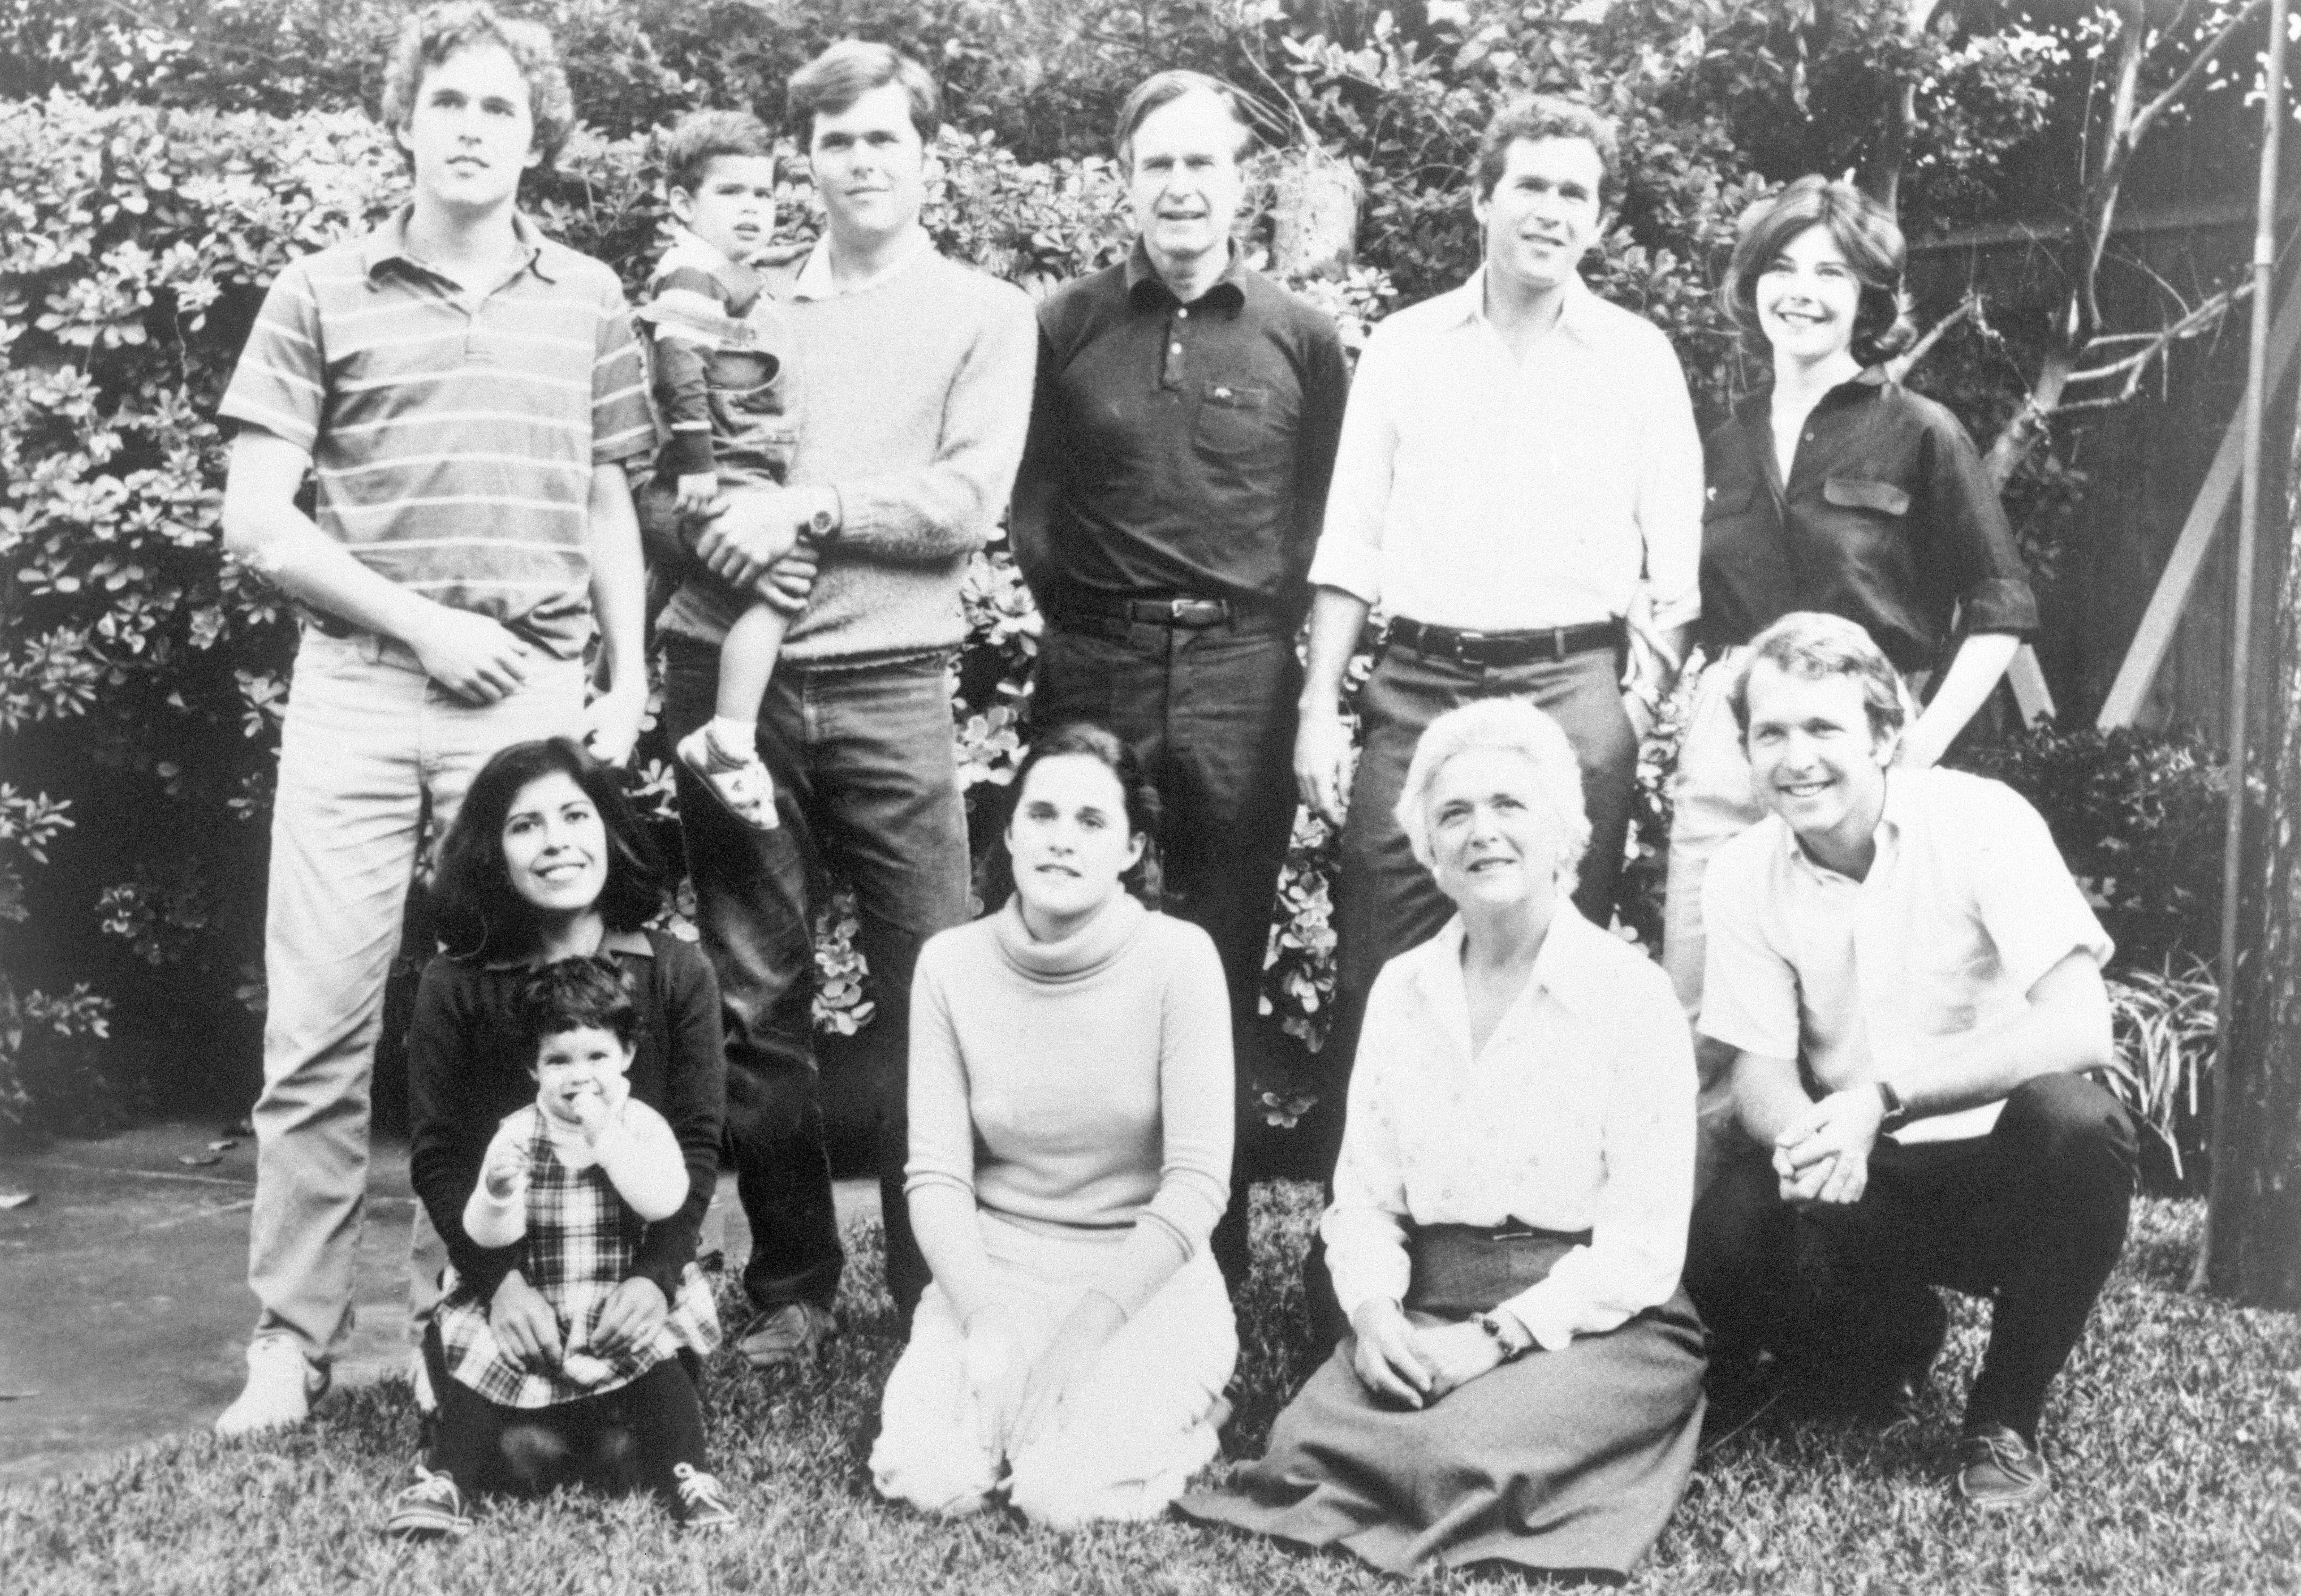 Bush Family Photo. Top, Left to right: Marvin, 22; George, 3; Jeb, 26; George; George W., 33; George's wife, Laura. Bottom, left to right: Jeb's wife, Columba; Noelle, 2; Dorothy, 20; Barbara; Neil, 24.   Source: Getty Images